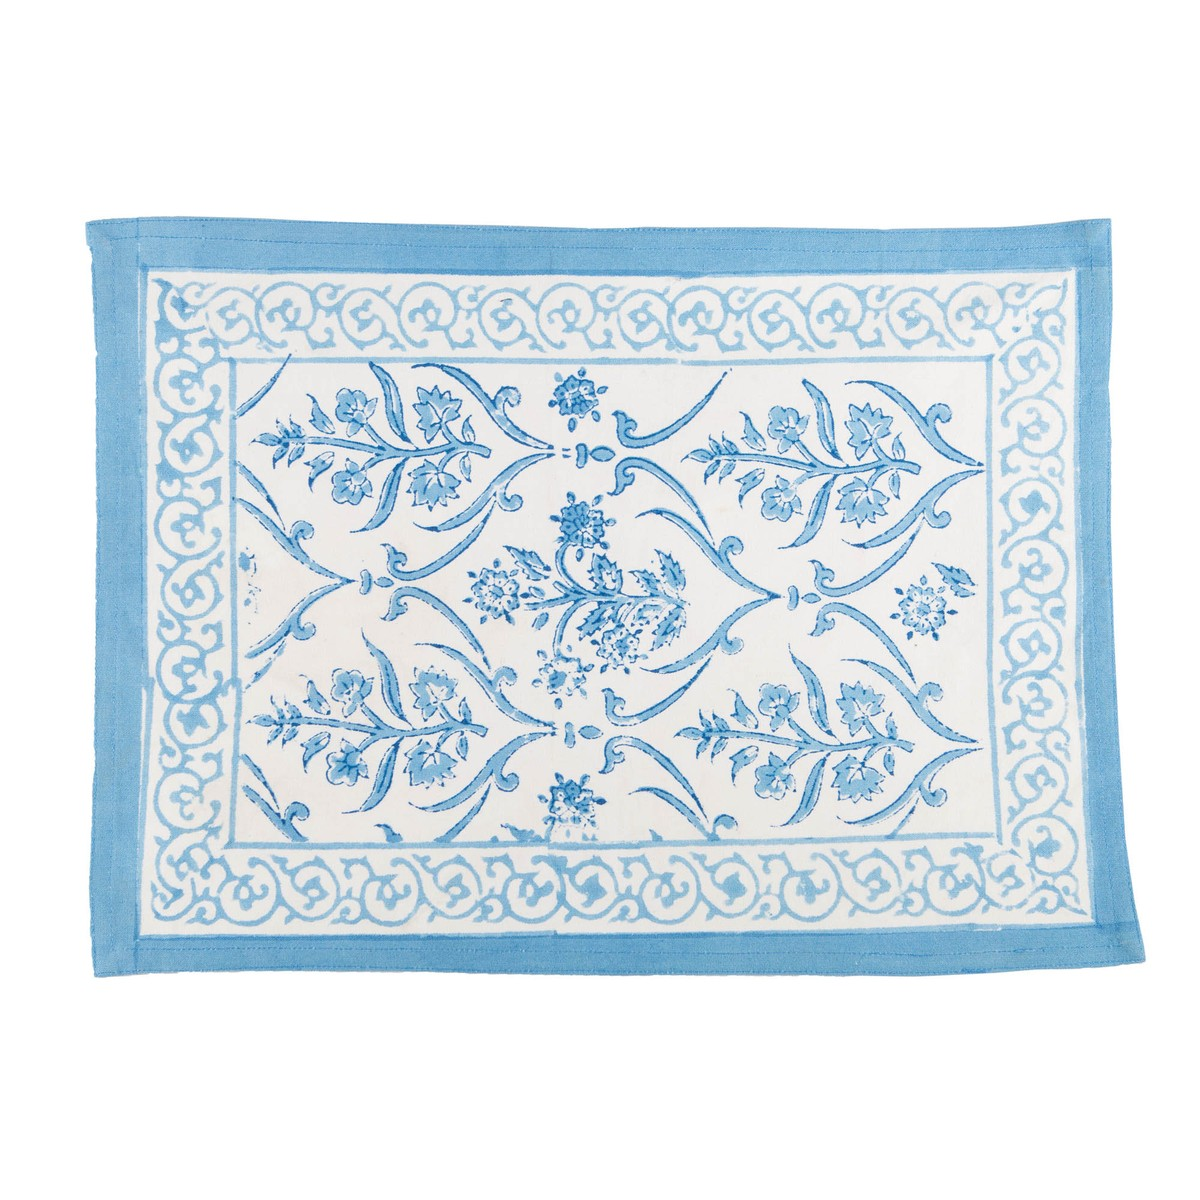 Set de table Oeillet de chine Blanc-bleu 32x45cm